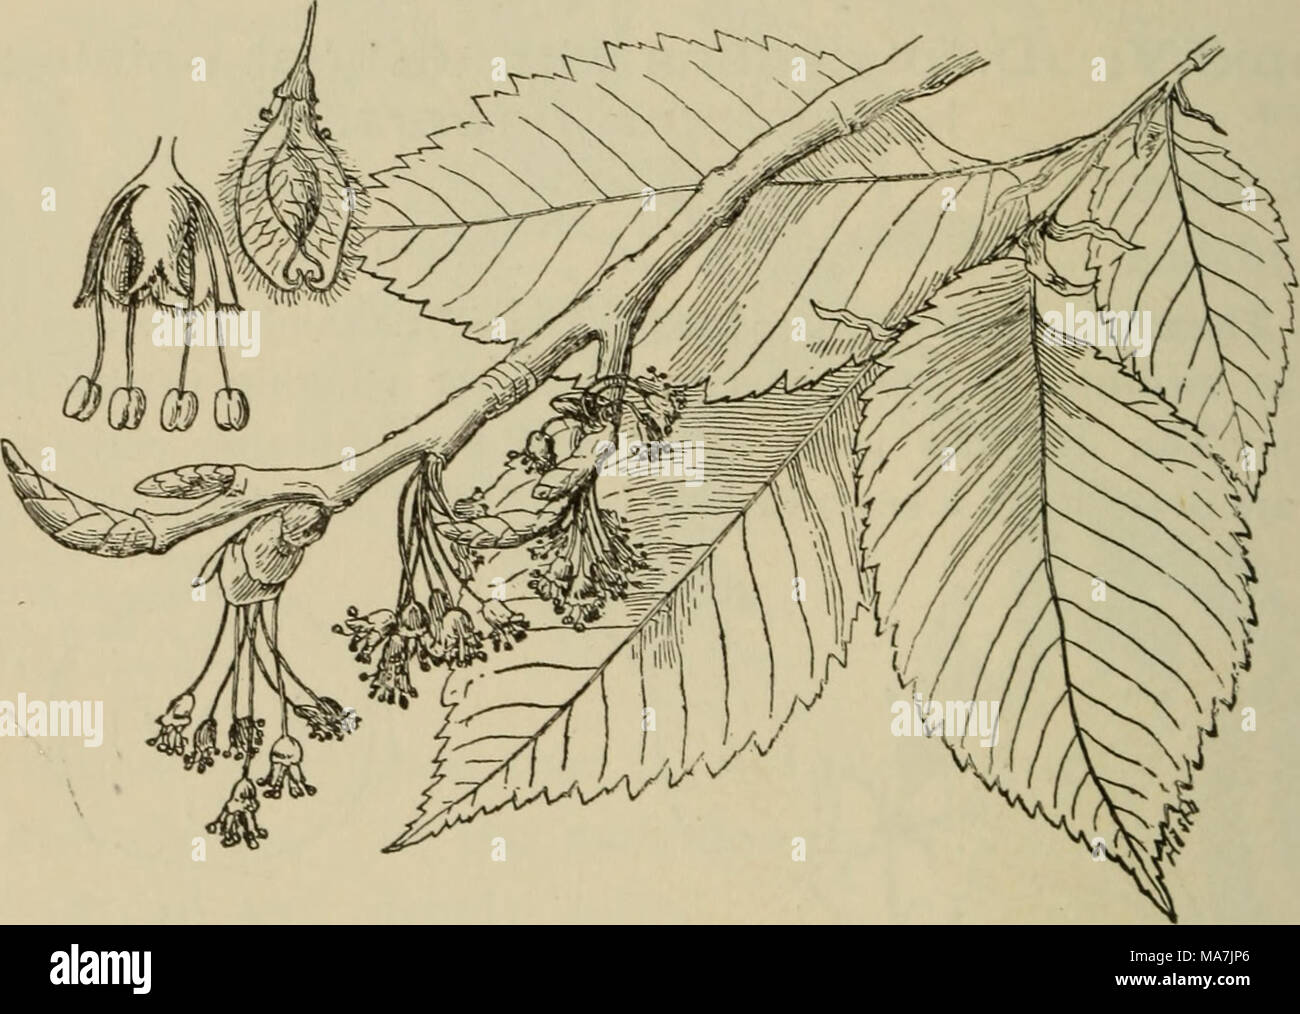 . Elementary botany . Fig- 347- Spray of leaves and flowers of the American elm ; at the left above is section of flower, next is winged seed (a samara). present when the leaves first come from the bud soon fall away. The flowers are in lateral clusters, which arise from the axils of the leaves, and appear in the spring before the leaves. They hang by long pedicels, and the petals are absent. The calyx is bell-shaped, and 4-9-clett on the margin. The stamens vary also in number in about the same proportion. A section of the flower in fig. 347 shows the arrangement of the parts, the ovary in th - Stock Image